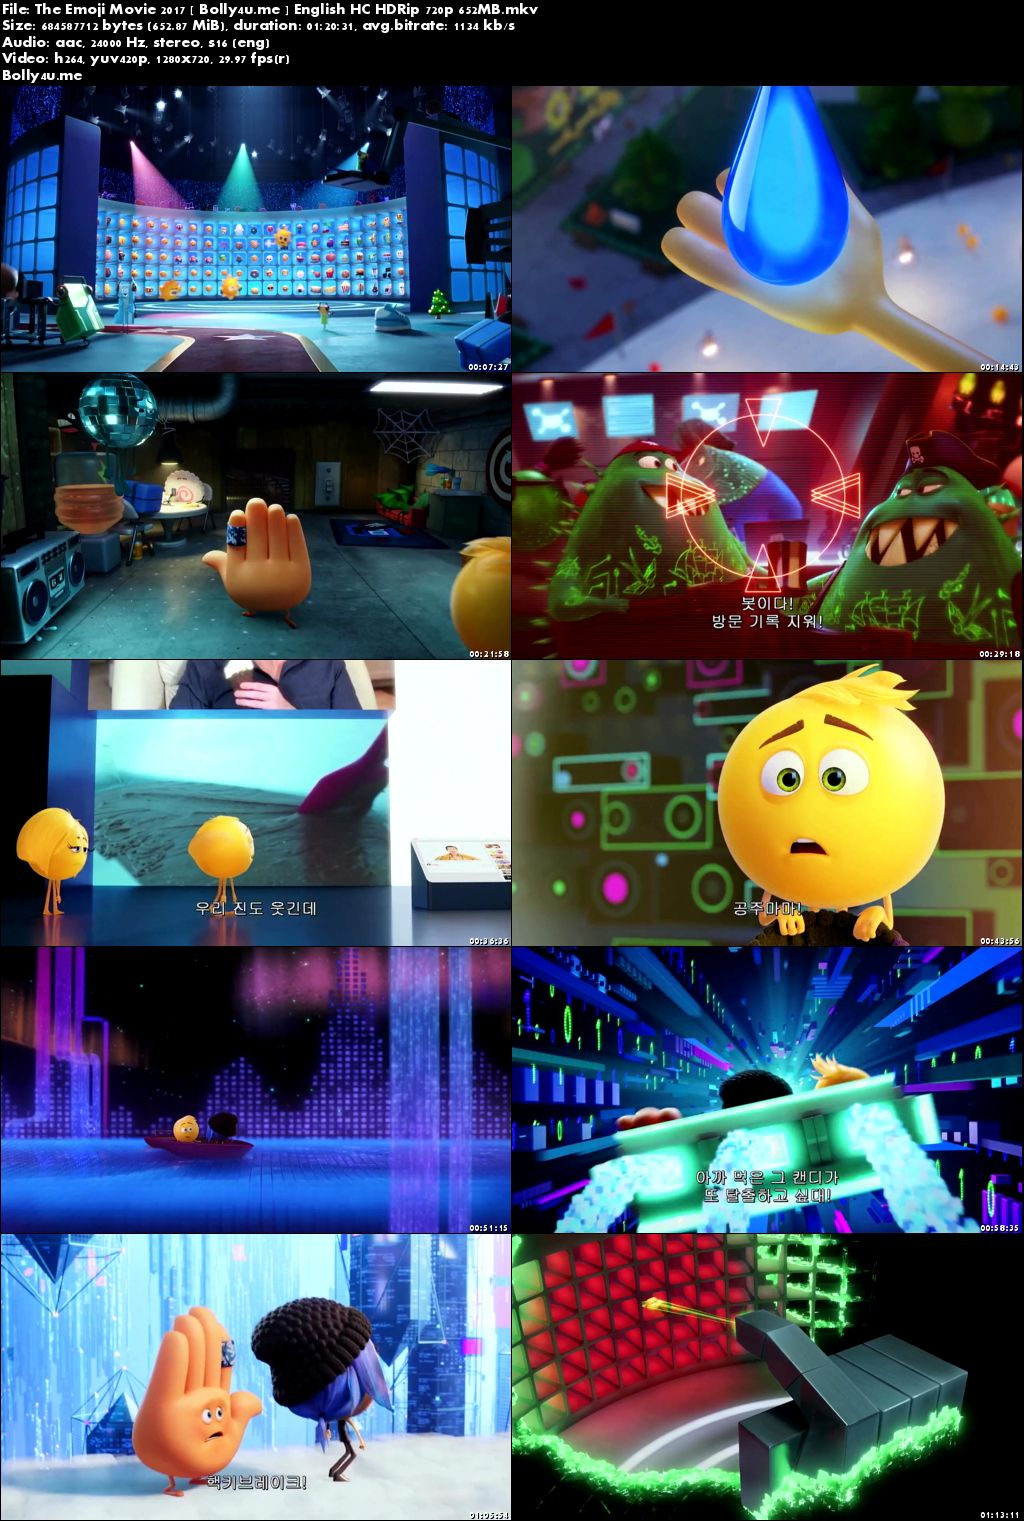 The Emoji Movie 2017 HC HDRip 250MB Full English Movie Download 480p